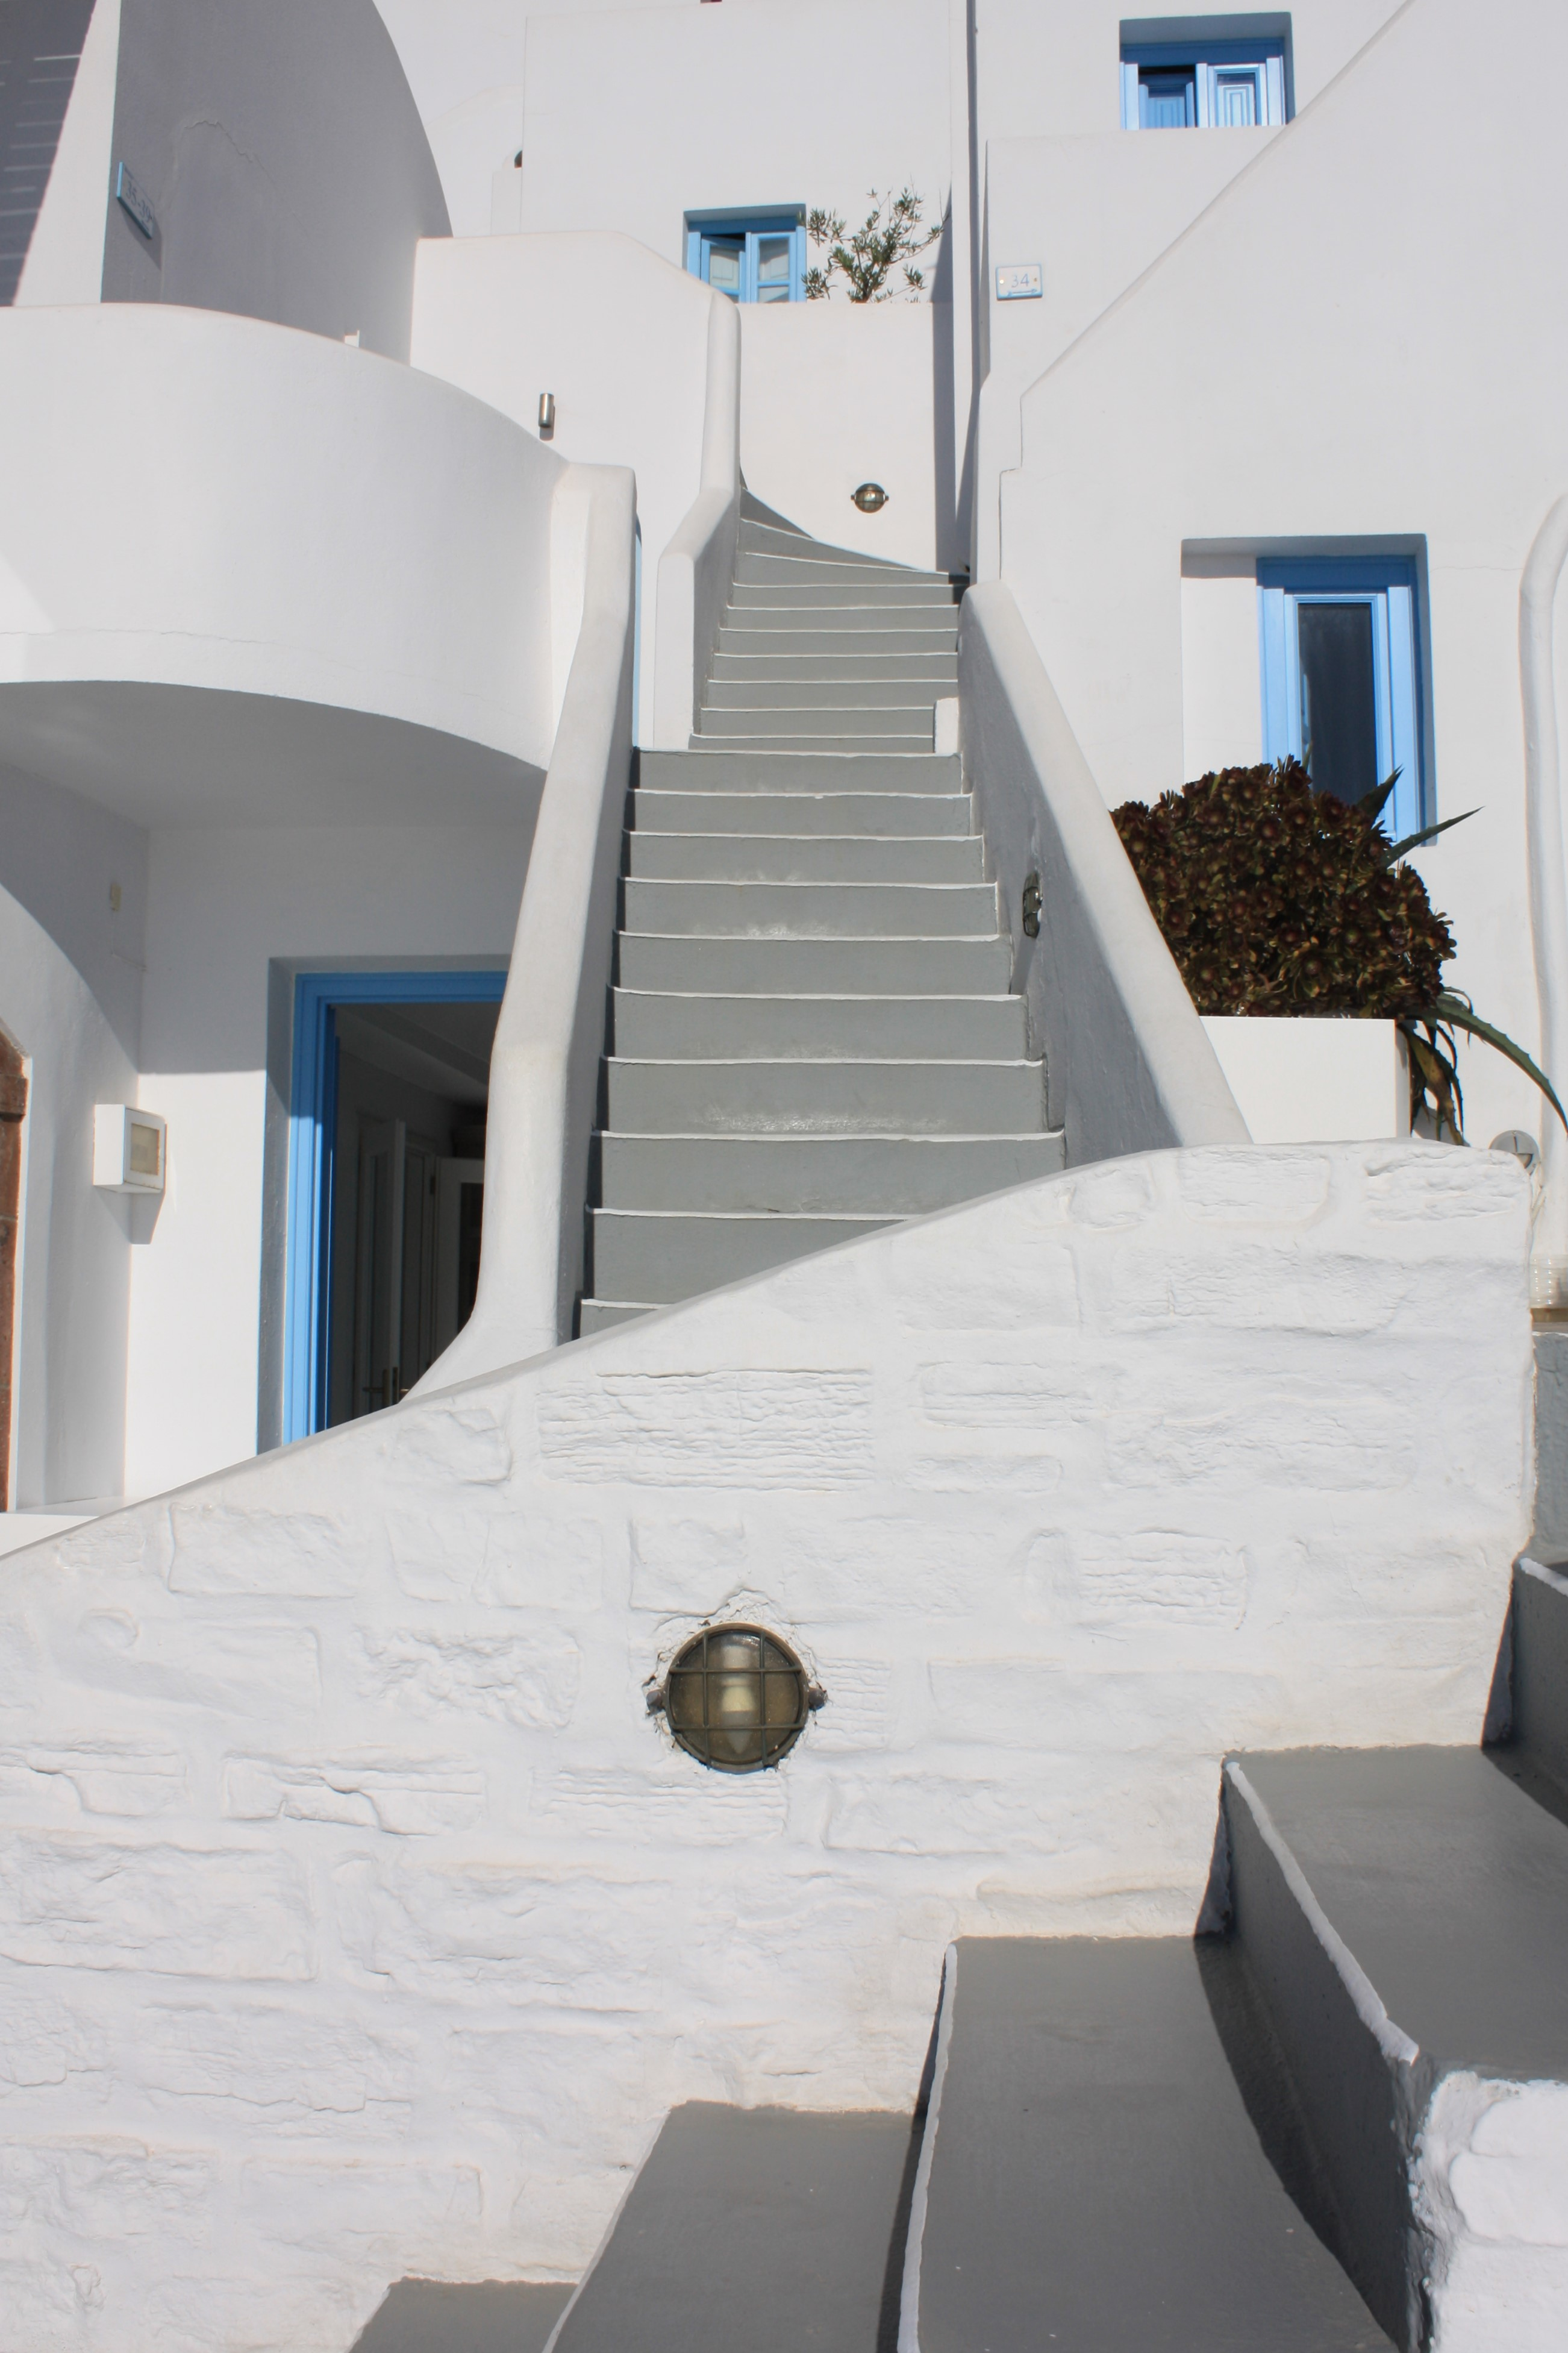 Blue and White, With Foliage, Santorini, Greece